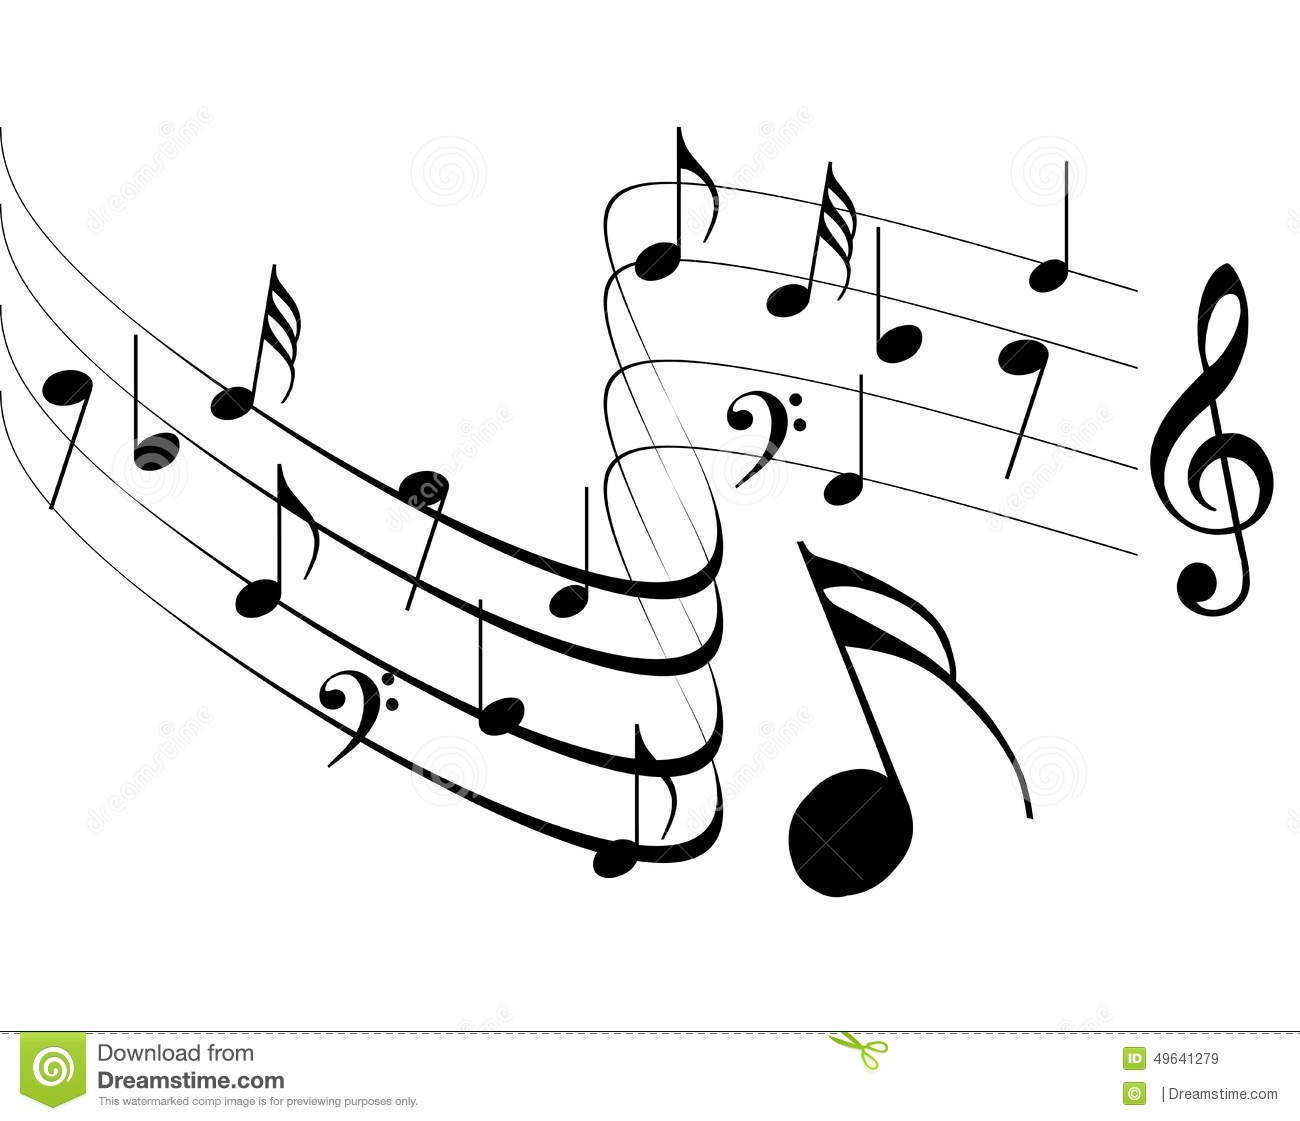 Clipart Musical Scale 20 Free Cliparts